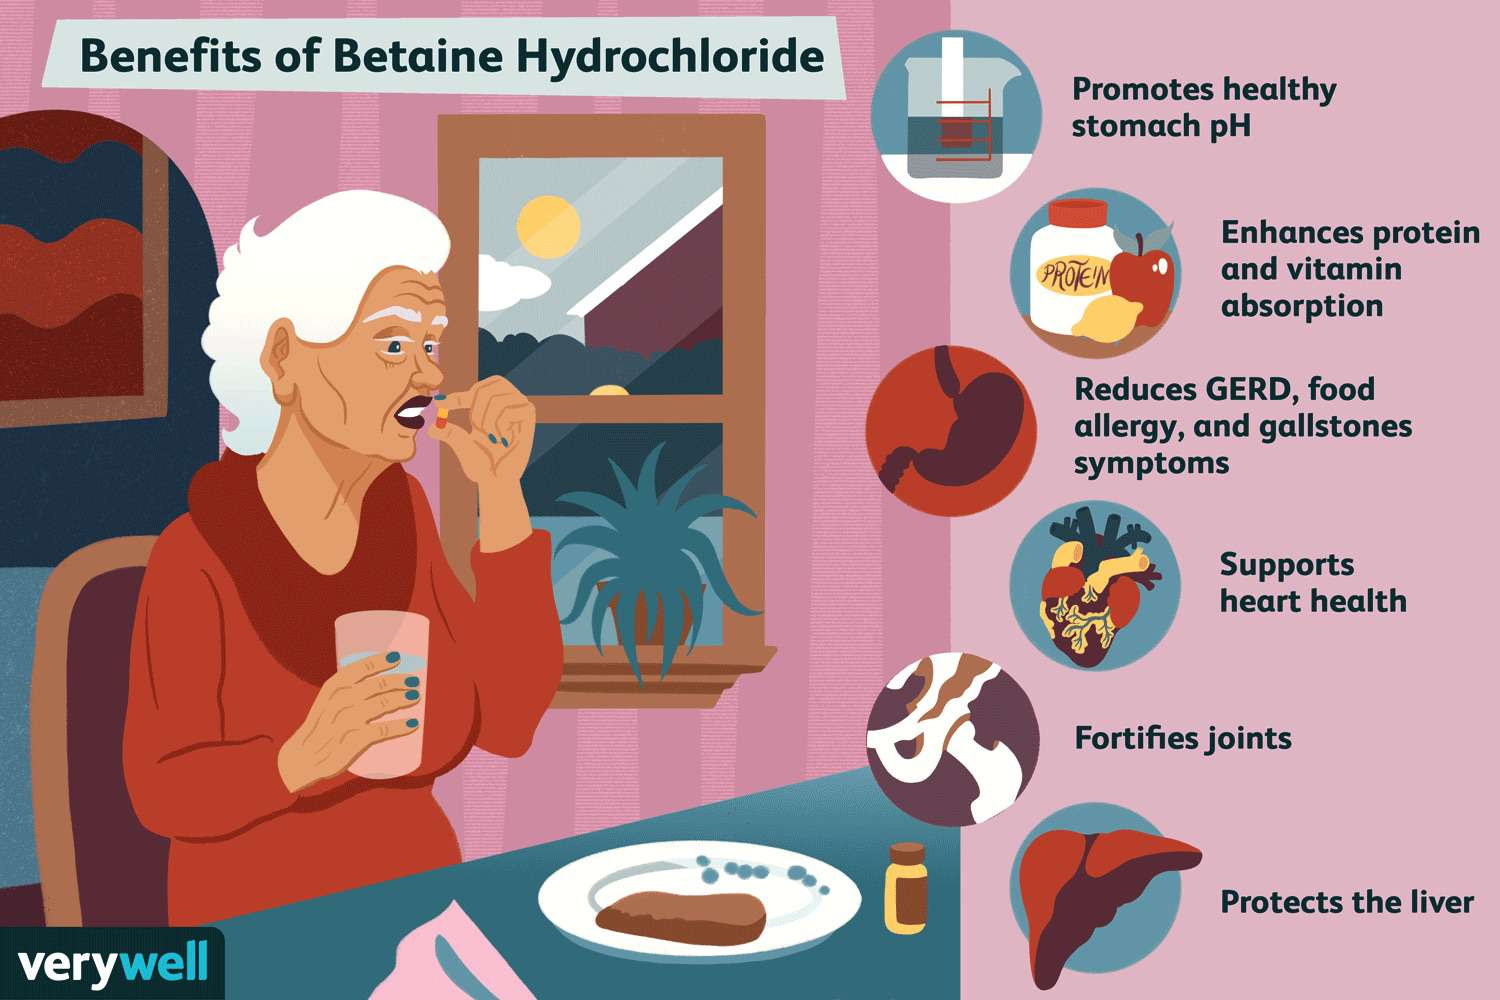 benefits of betaine hydrochloride